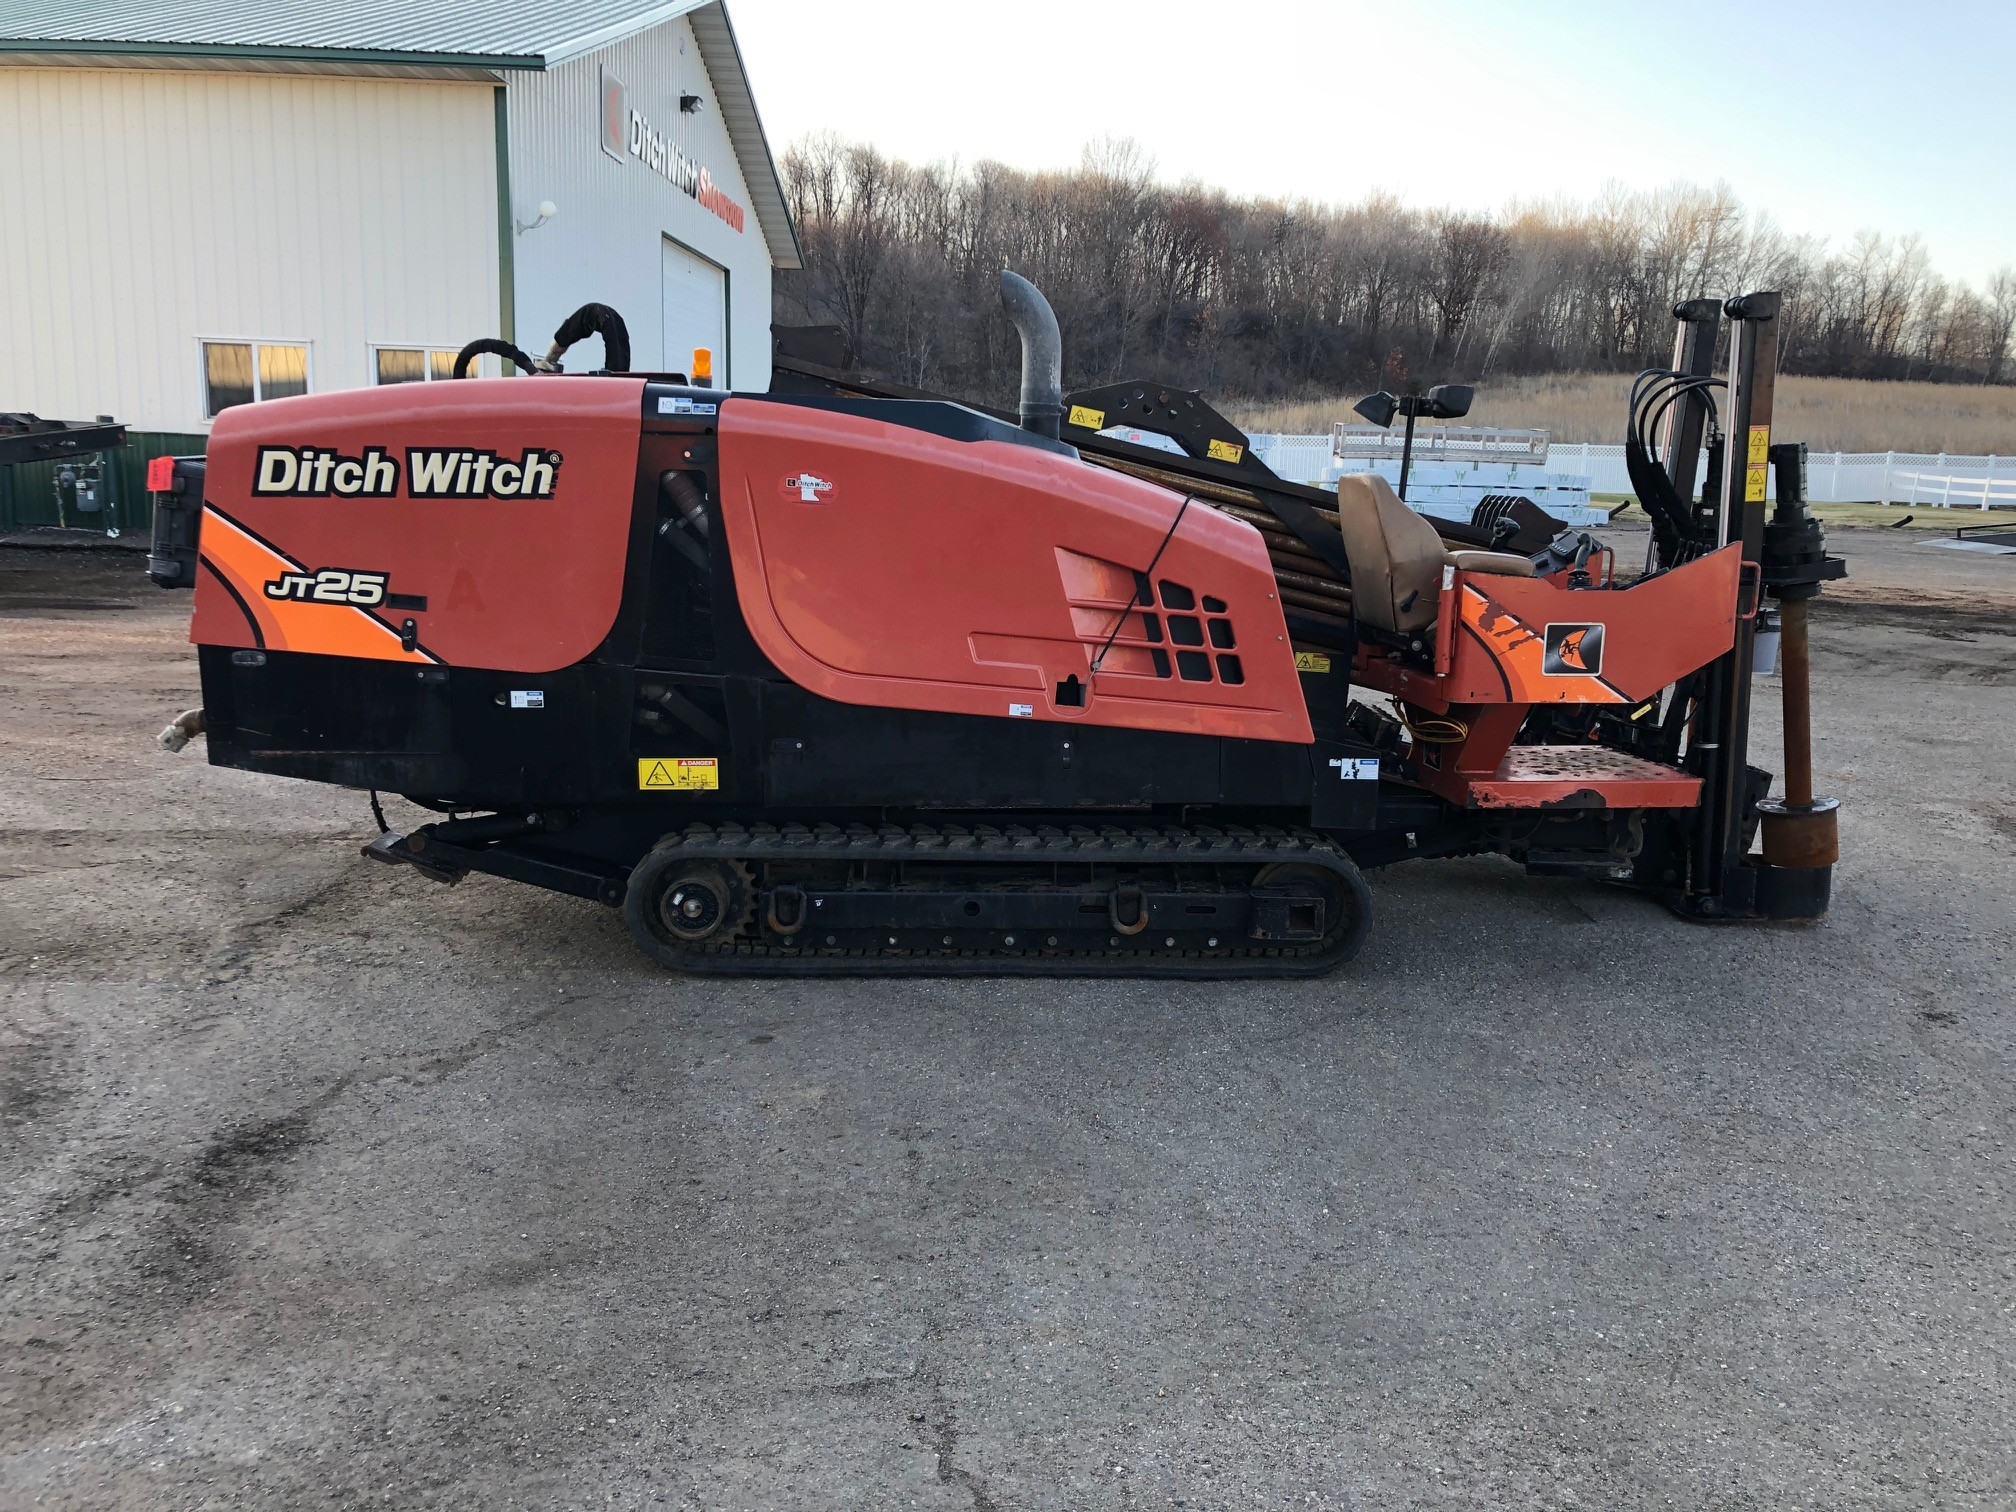 Used, 2016, Ditch Witch, JT25 (Tier 4), Boring / Drilling Machines